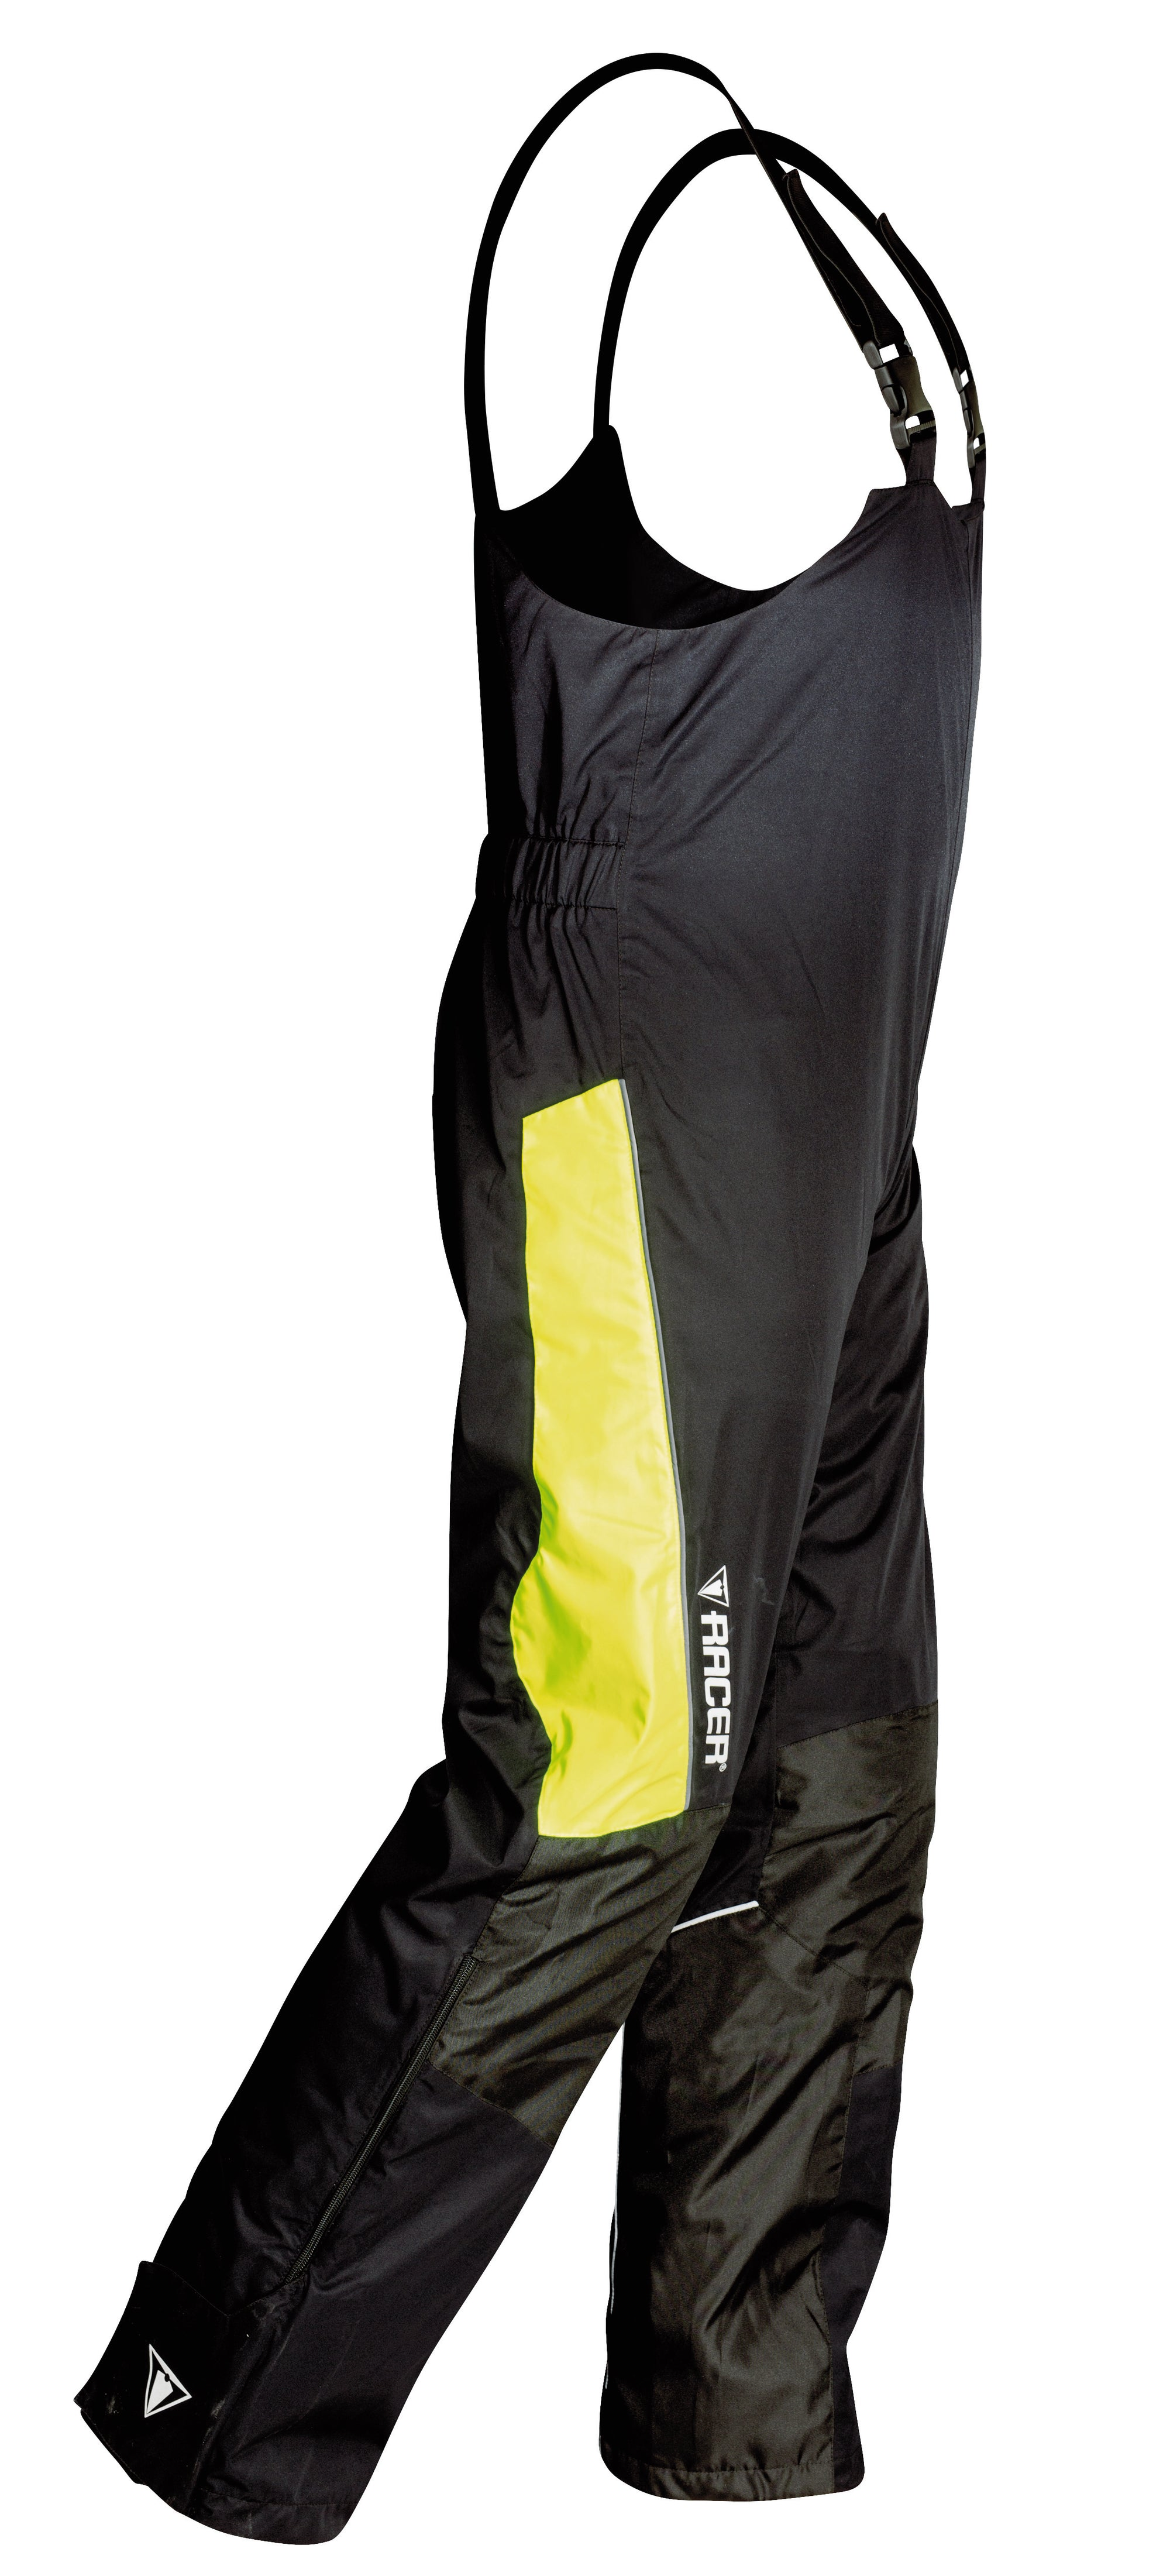 Racer Flex Rain Bib Pants, Waterproofs, Racer - Averys Motorcycles